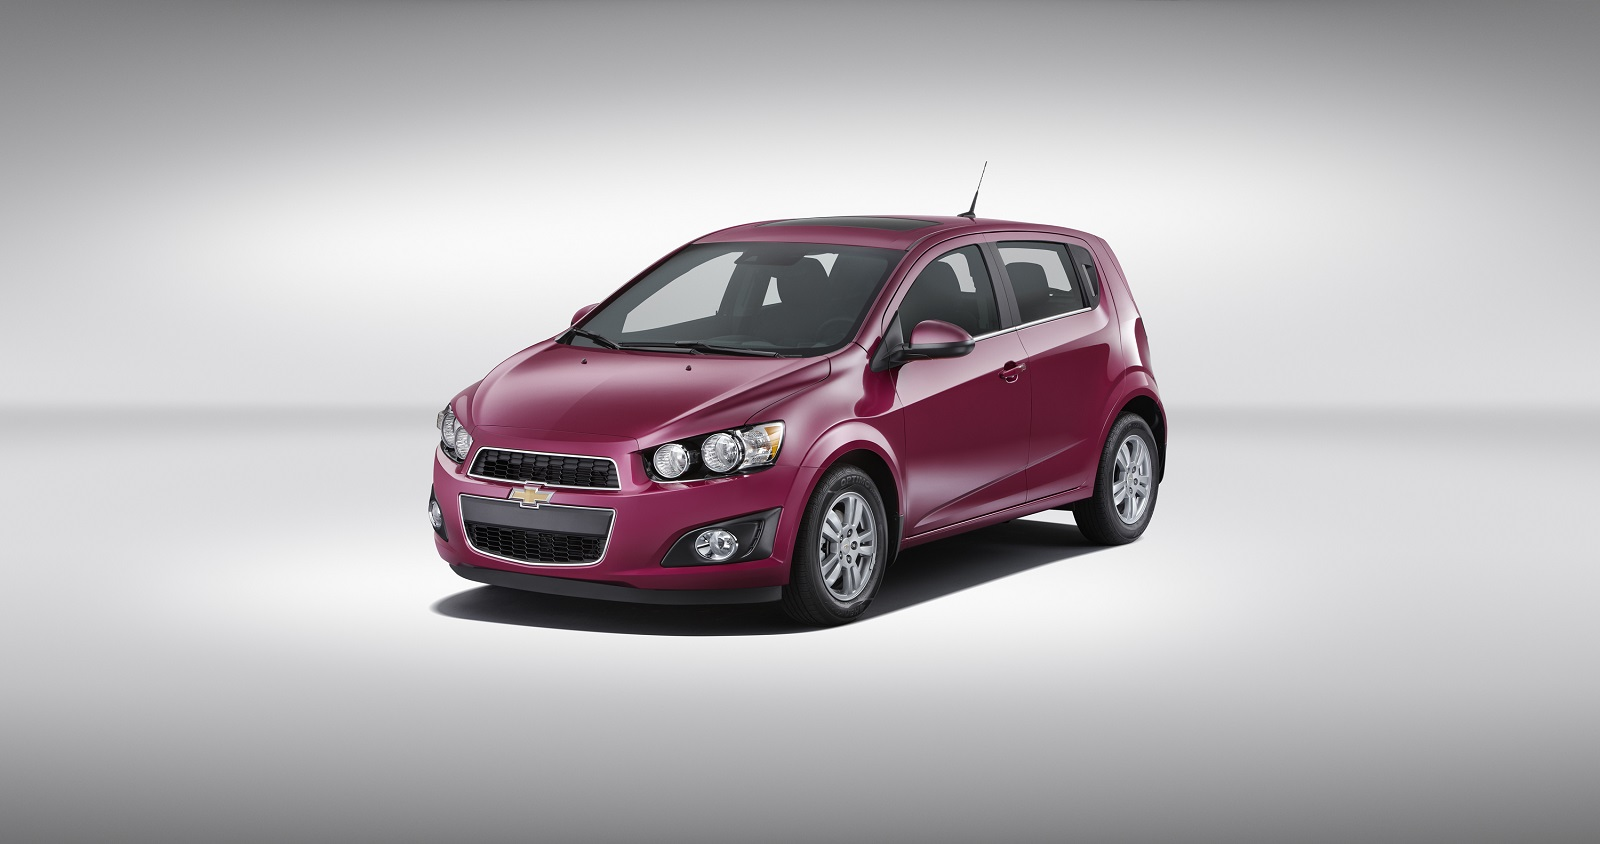 Chevy Sonic Specs >> 2014 Chevrolet Sonic (Chevy) Review, Ratings, Specs, Prices, and Photos - The Car Connection